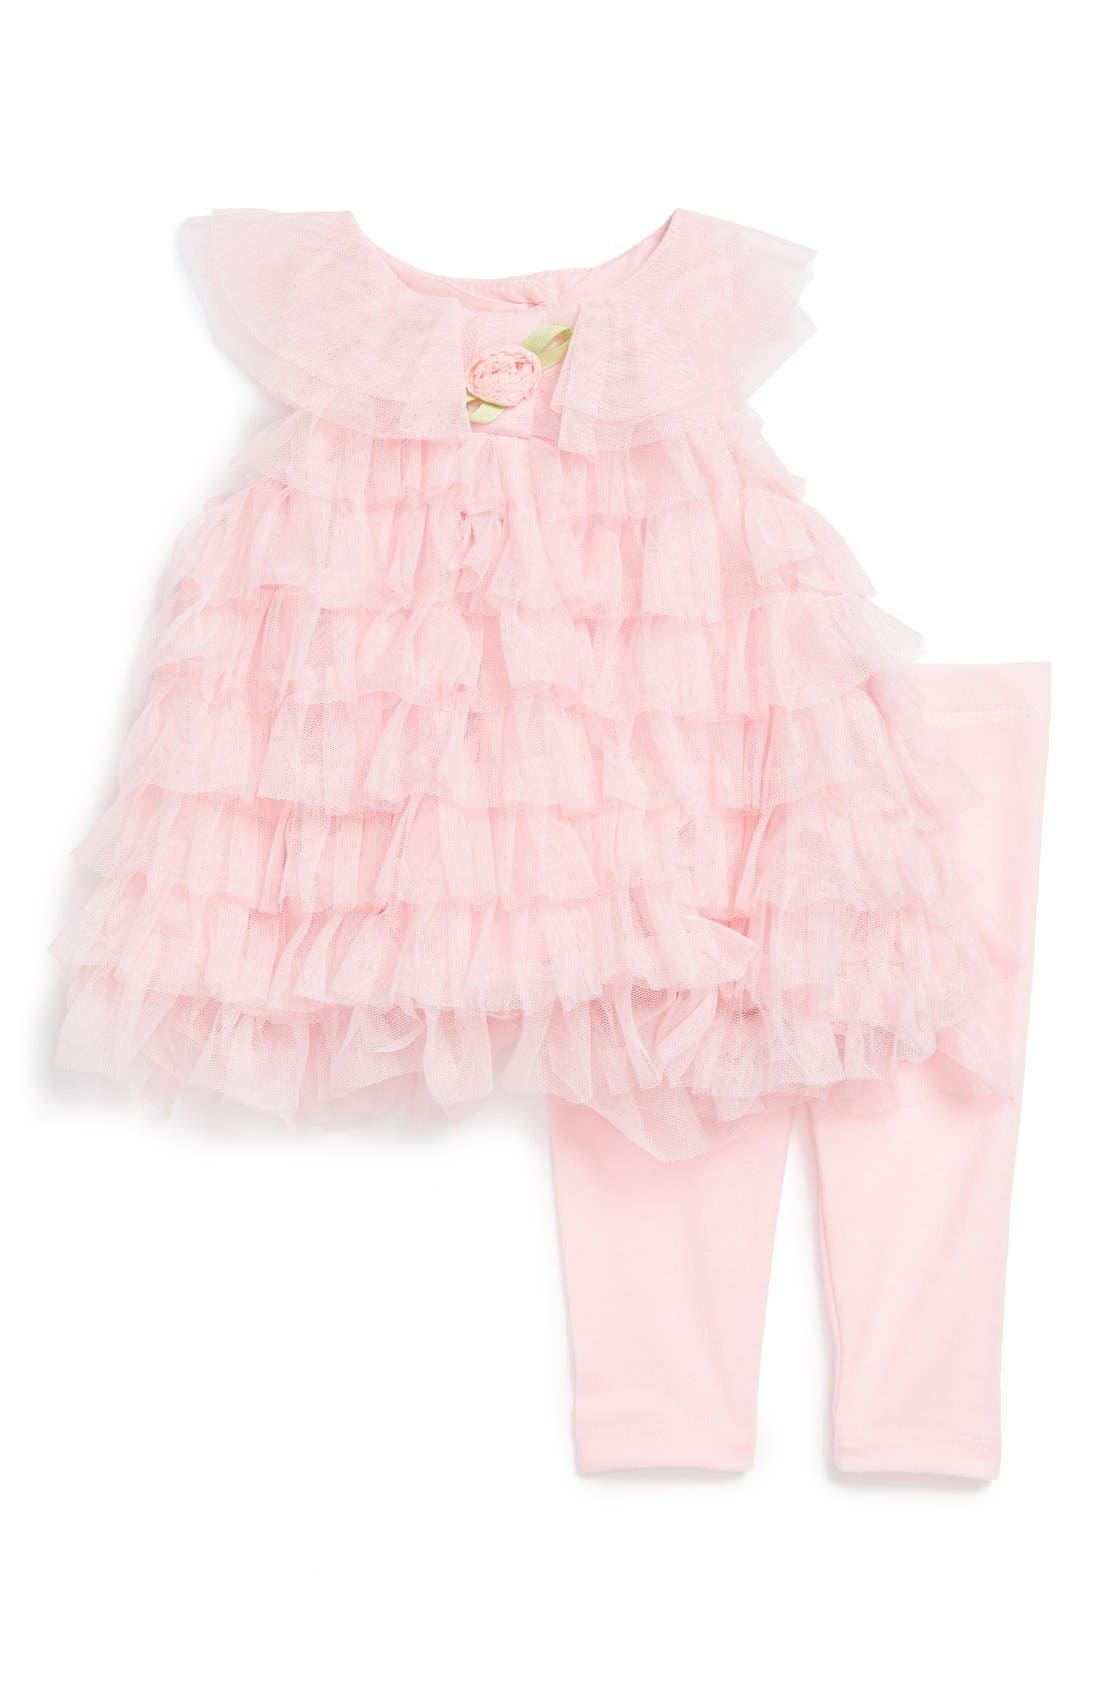 Main Image - Pippa & Julie Ruffle Dress & Leggings (Baby Girls)